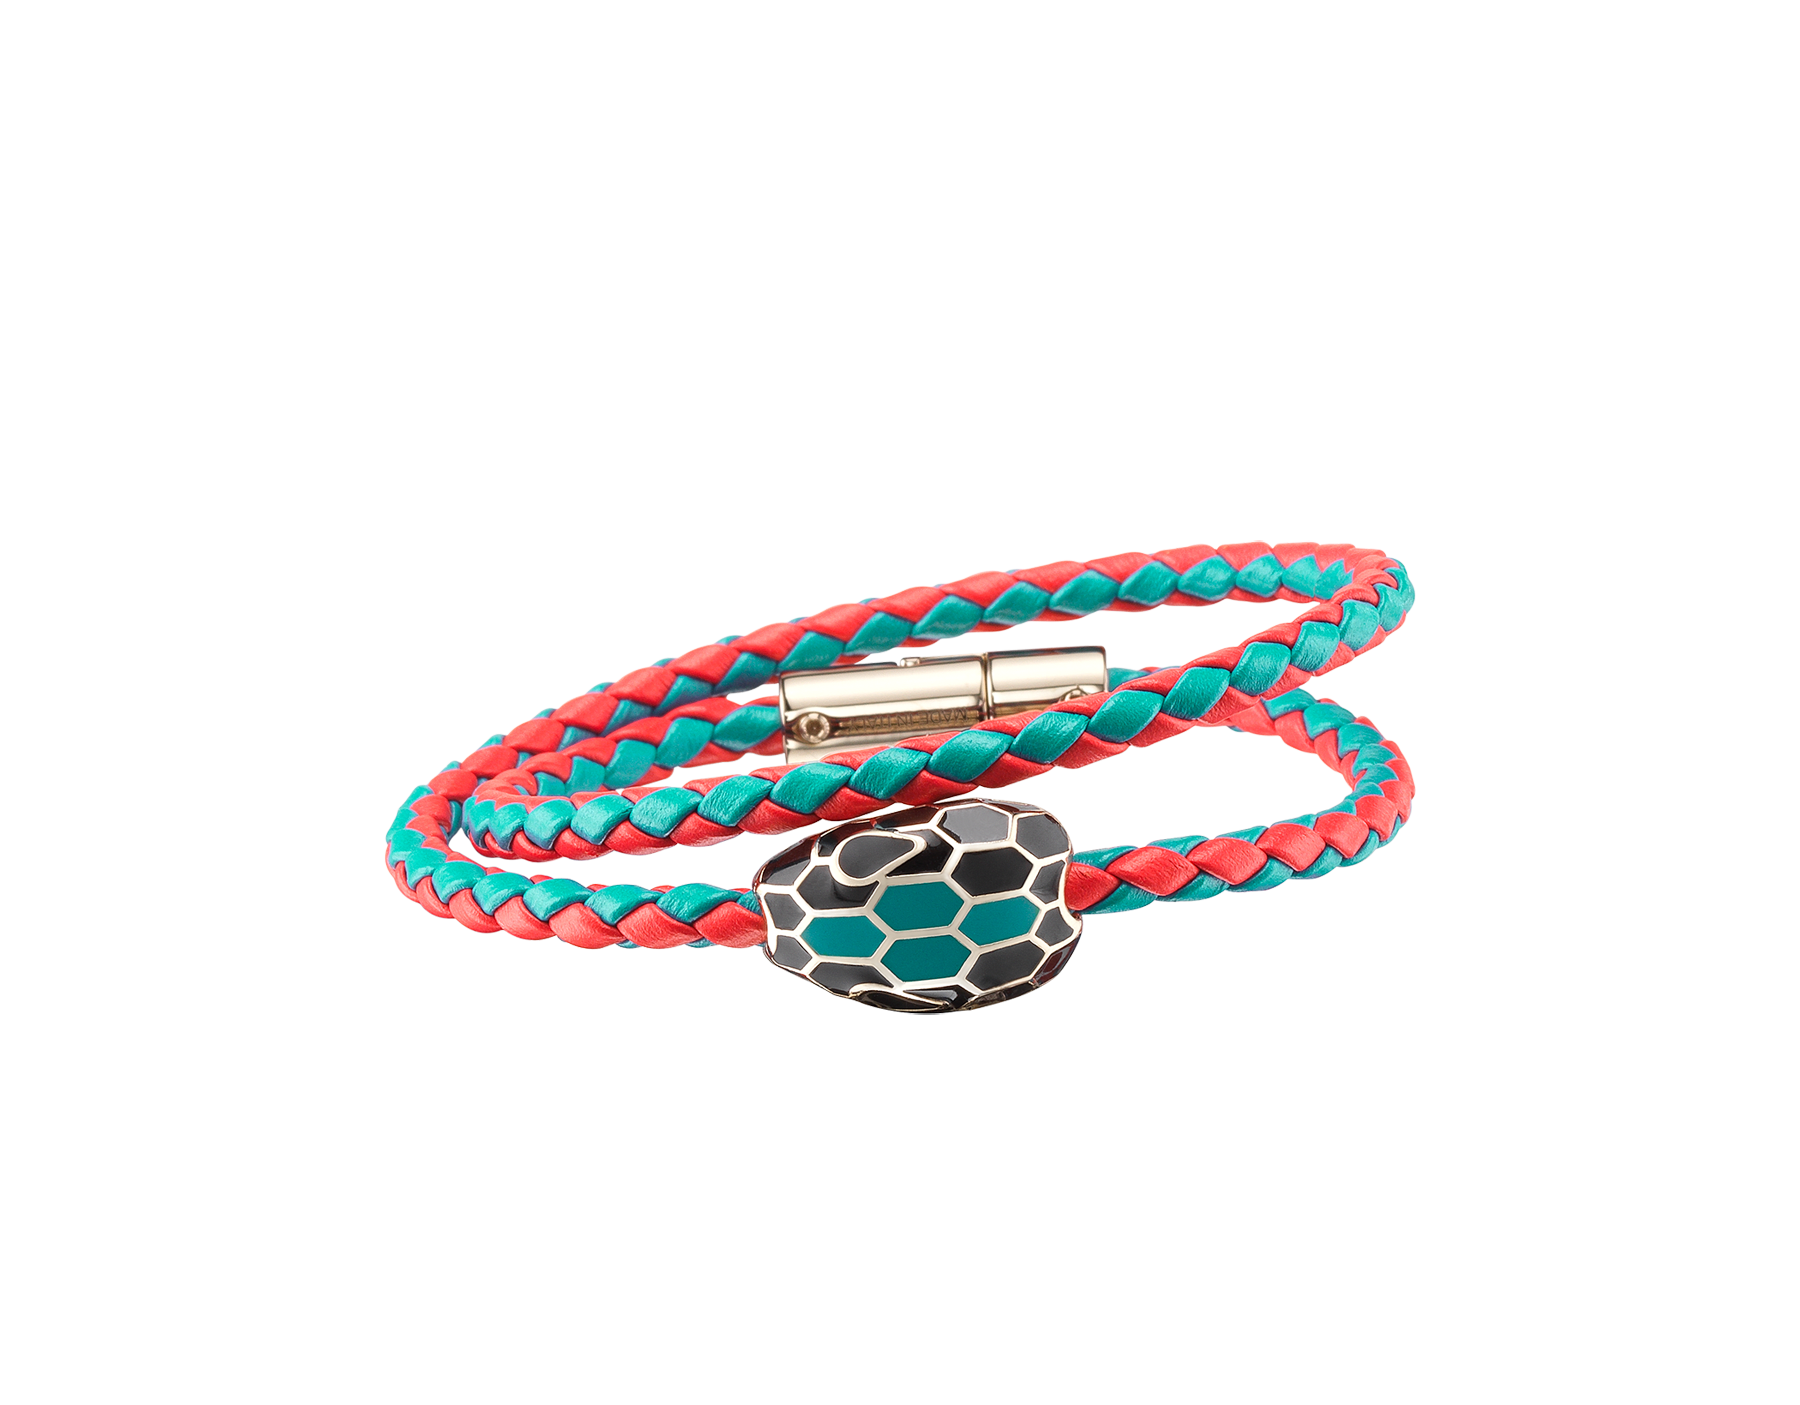 Serpenti Forevermulti-coiled braid bracelet in tropical tourquoise and sea star coral woven calf leather with an iconic snakehead décor in black and tropical tourquoise enamel. SerpDoubleBraid-WCL-TTSSC image 1